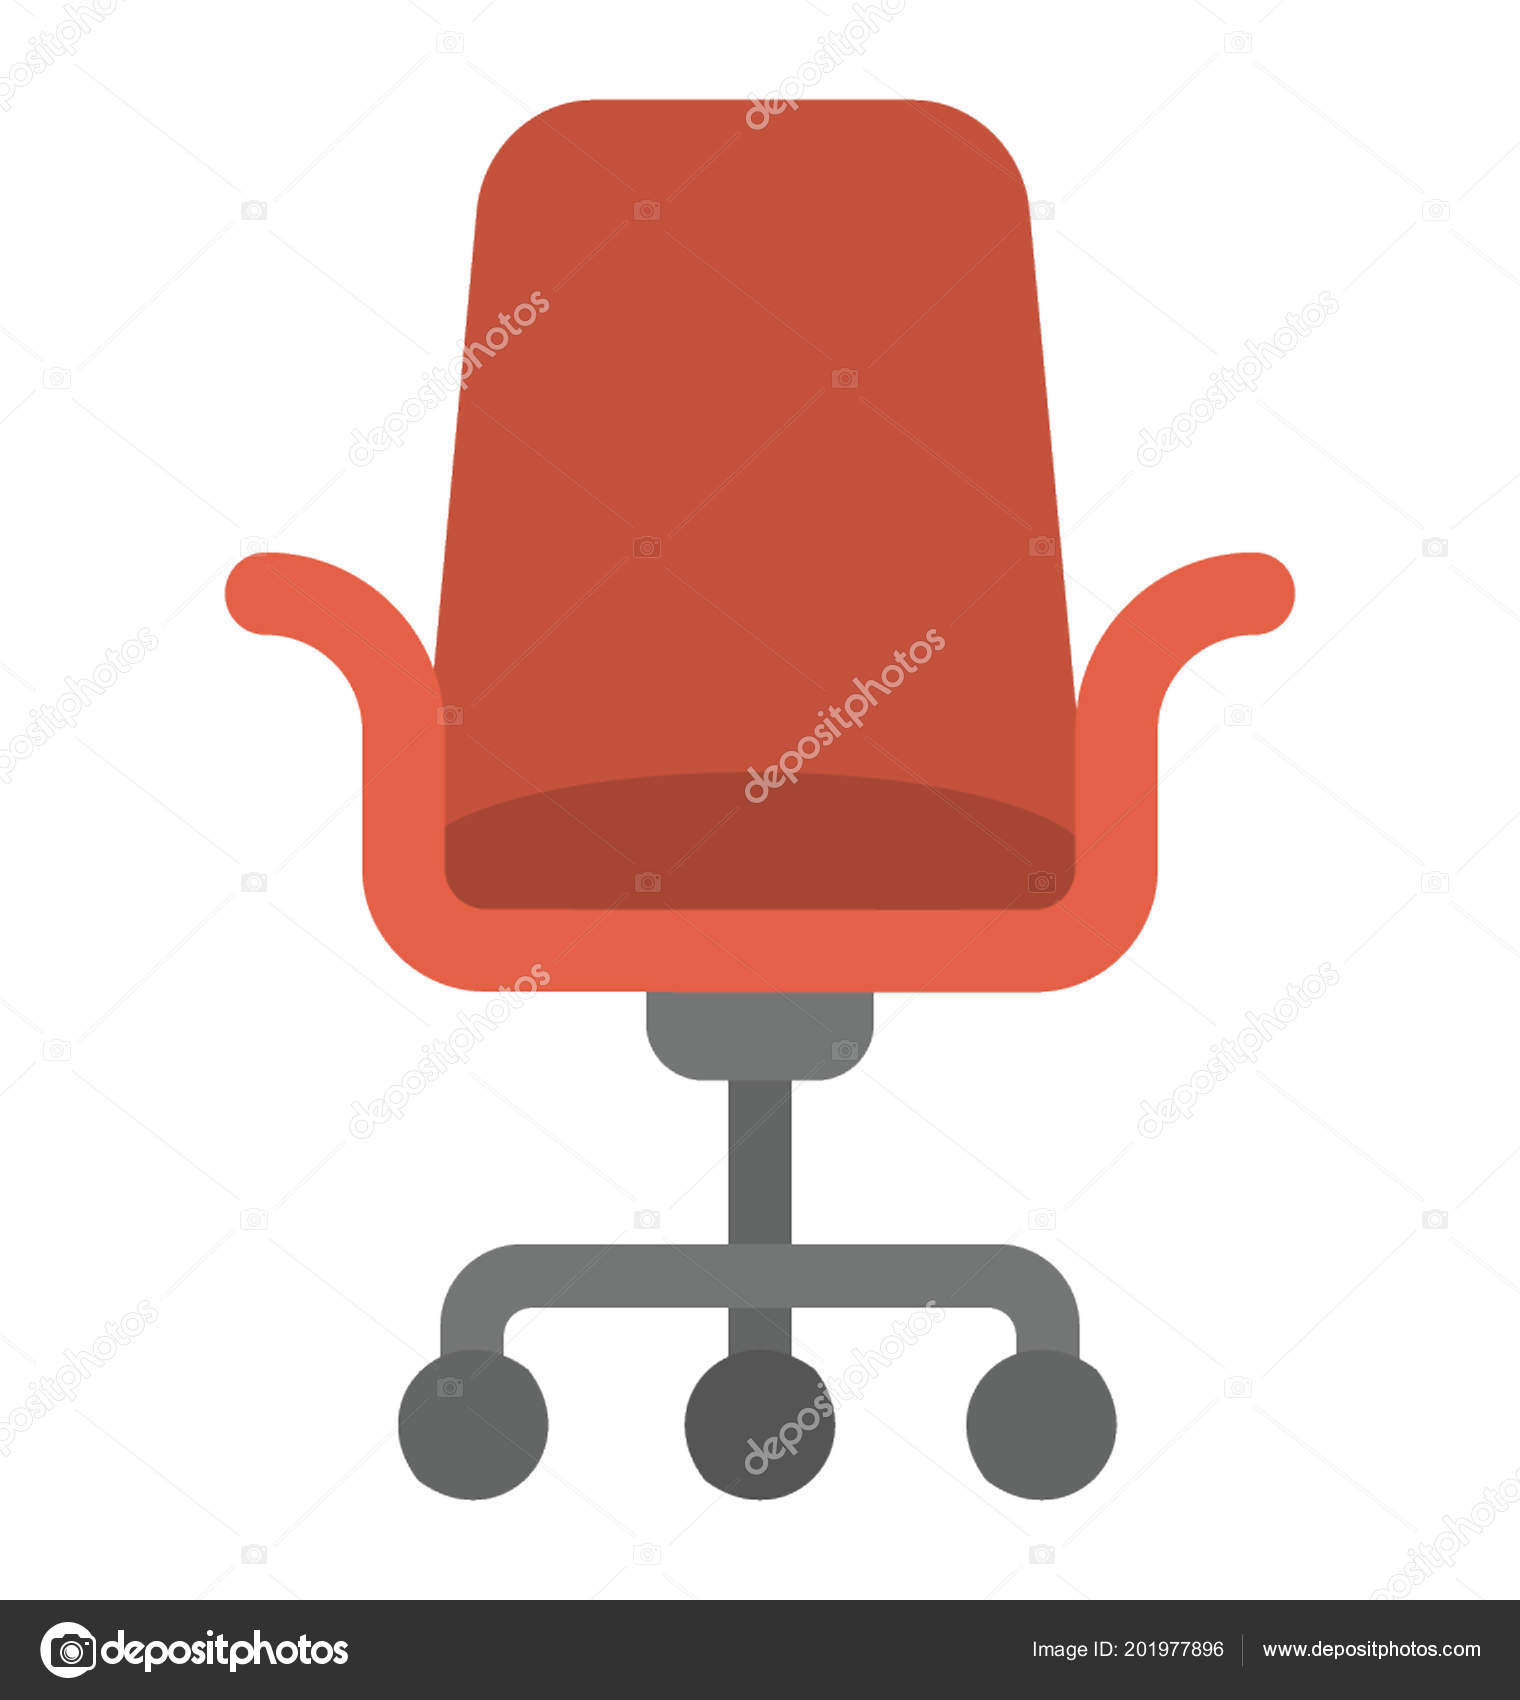 A mesh revolving chair for office use swivel chair u2014 Vector by vectorsmarket  sc 1 st  Depositphotos & Mesh Revolving Chair Office Use Swivel Chair u2014 Stock Vector ...